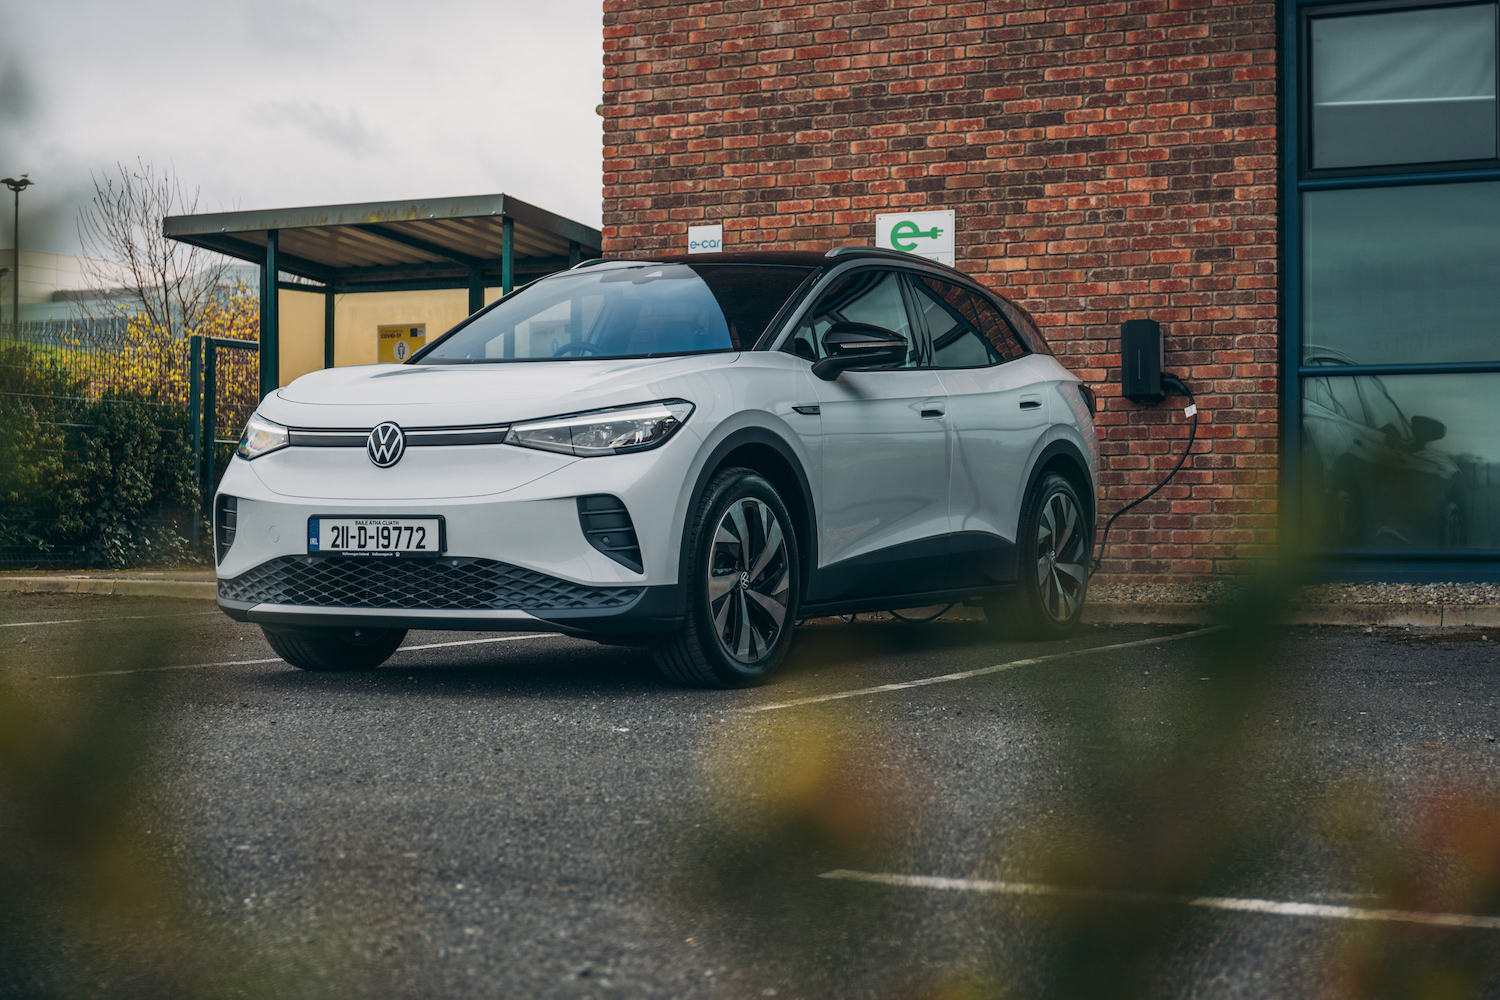 Car News   Volkswagen Ireland free charging points for businesses   CompleteCar.ie